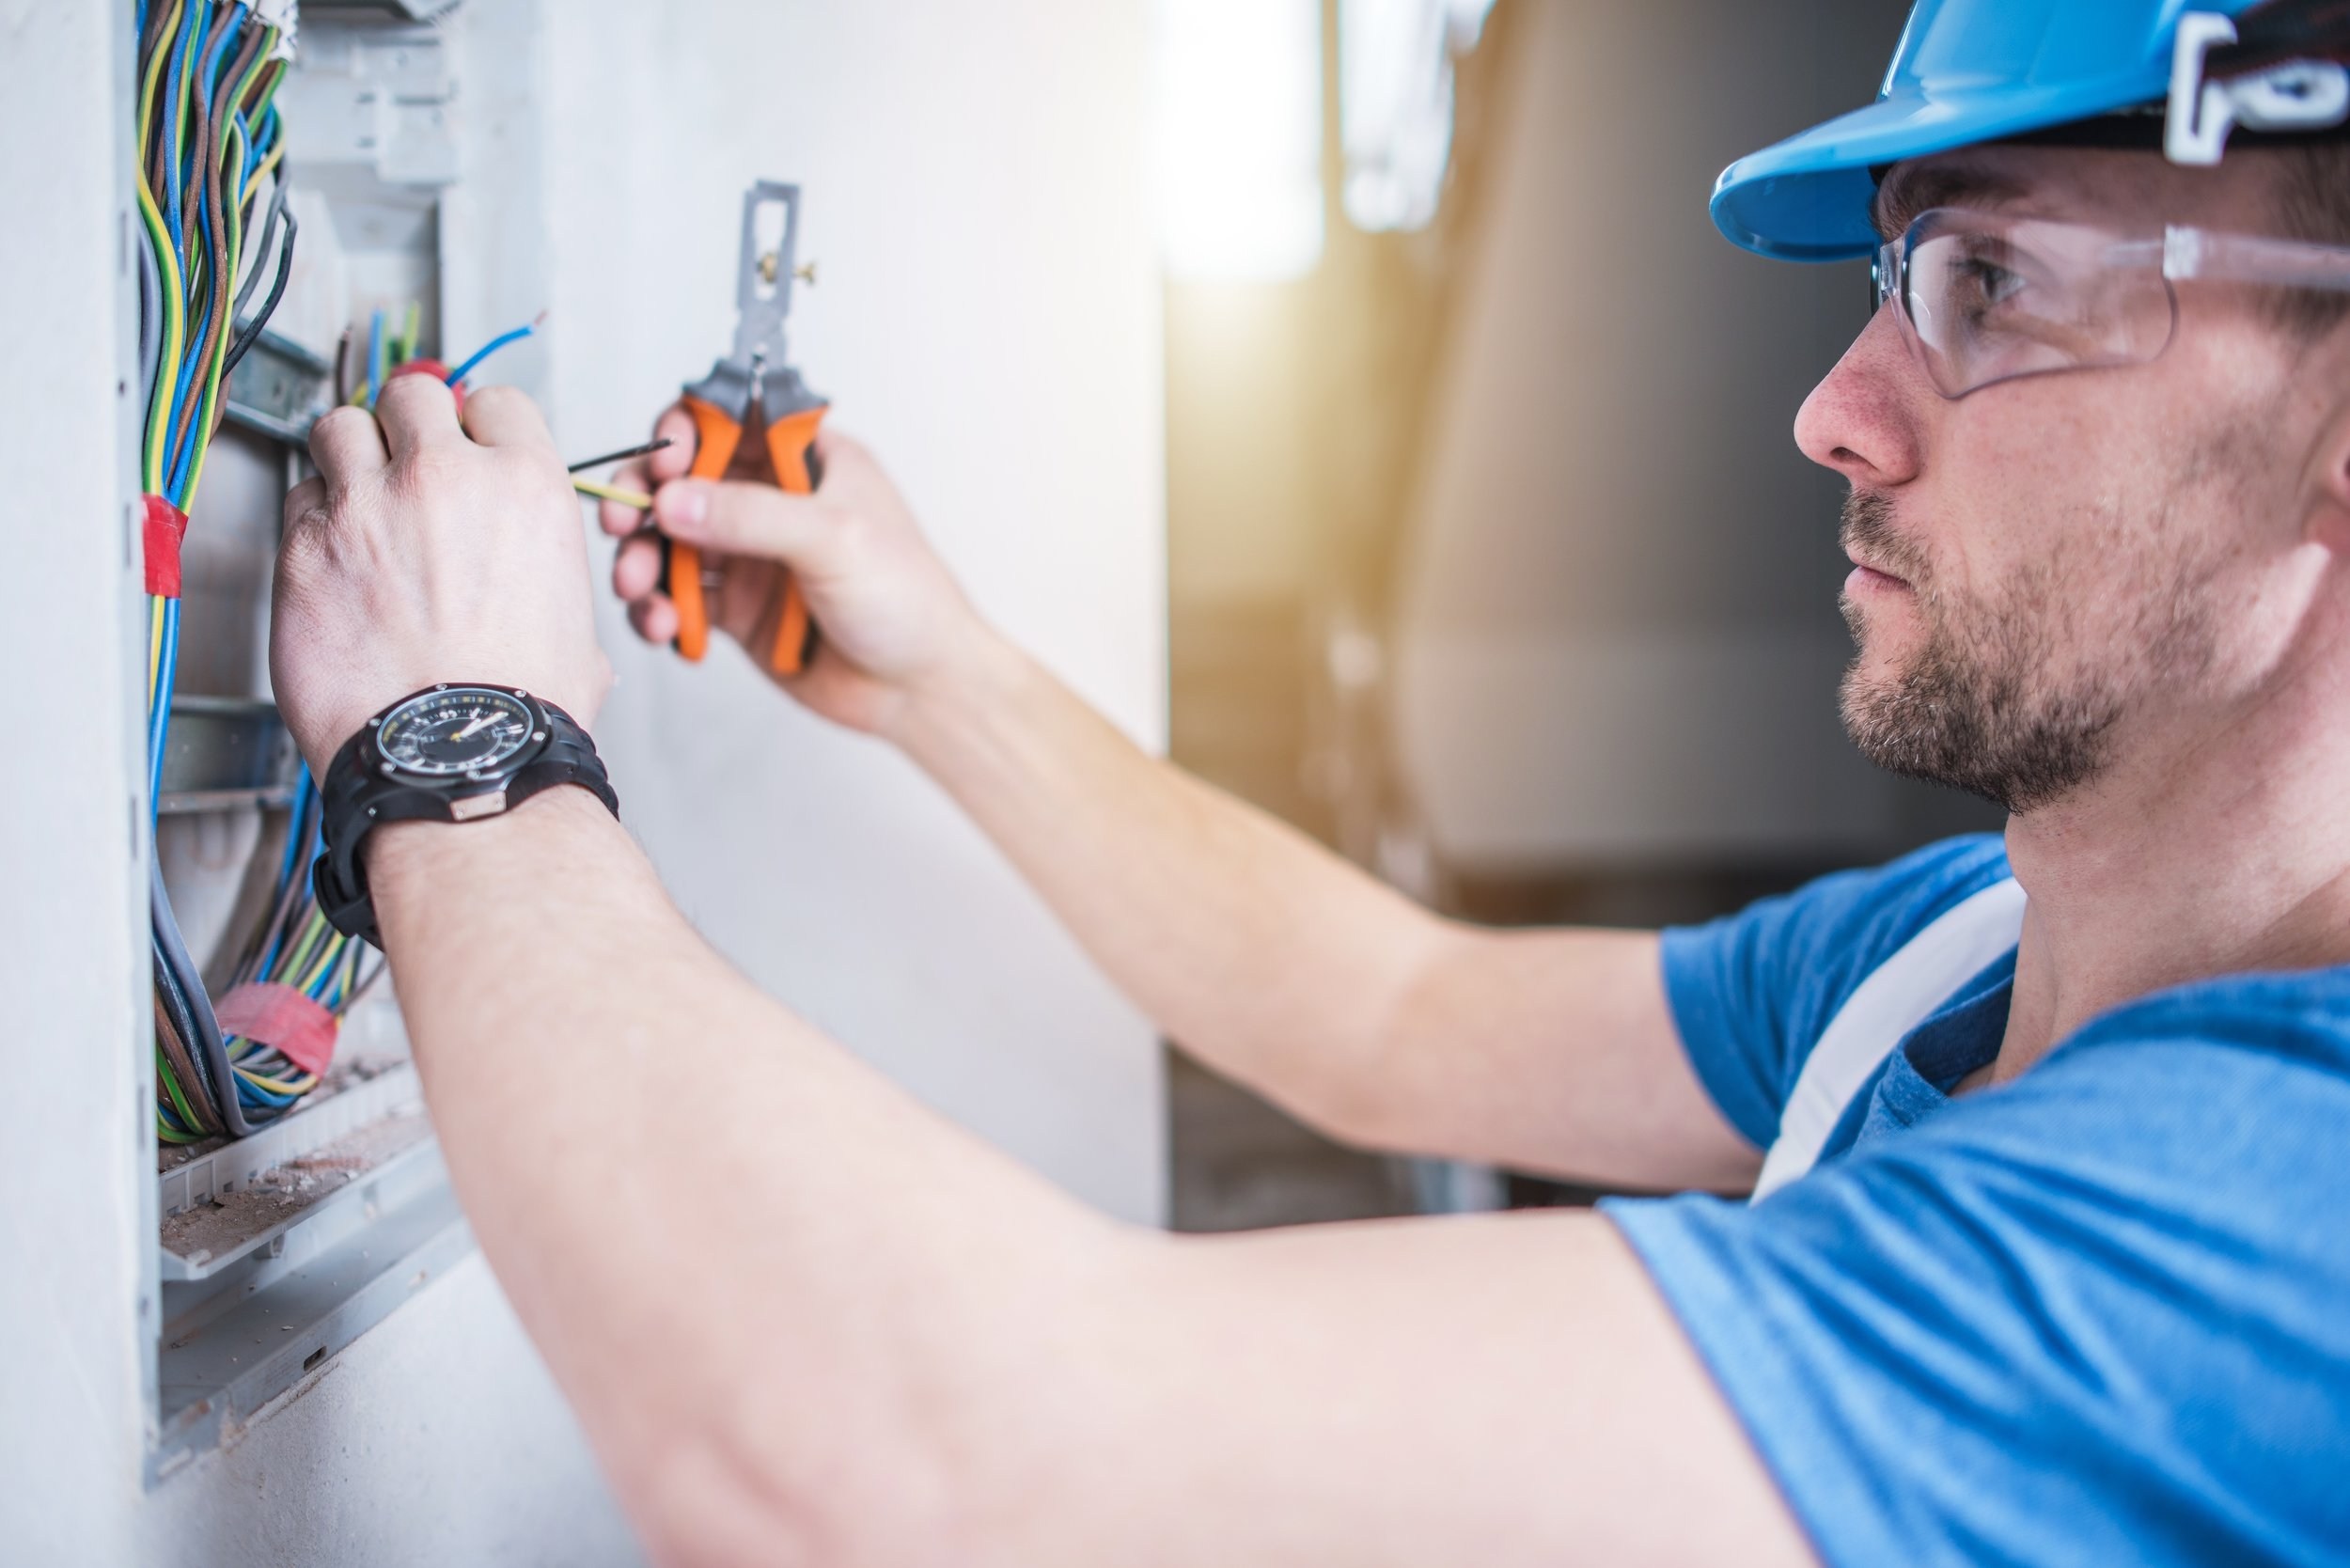 """Our belief has always been,  """"Solutions for problems, not just Band-Aids for symptoms.""""  Our team of knowledgeable experts will repair any electrical issue you bring us and can work with you on upgrading the electrical system in your home. Our commitment to customer care and our team's attention to detail make us stand out from our competitors. Our entire team of electricians are fully licensed and insured—something to confirm when hiring any electrician, no matter how small the job."""